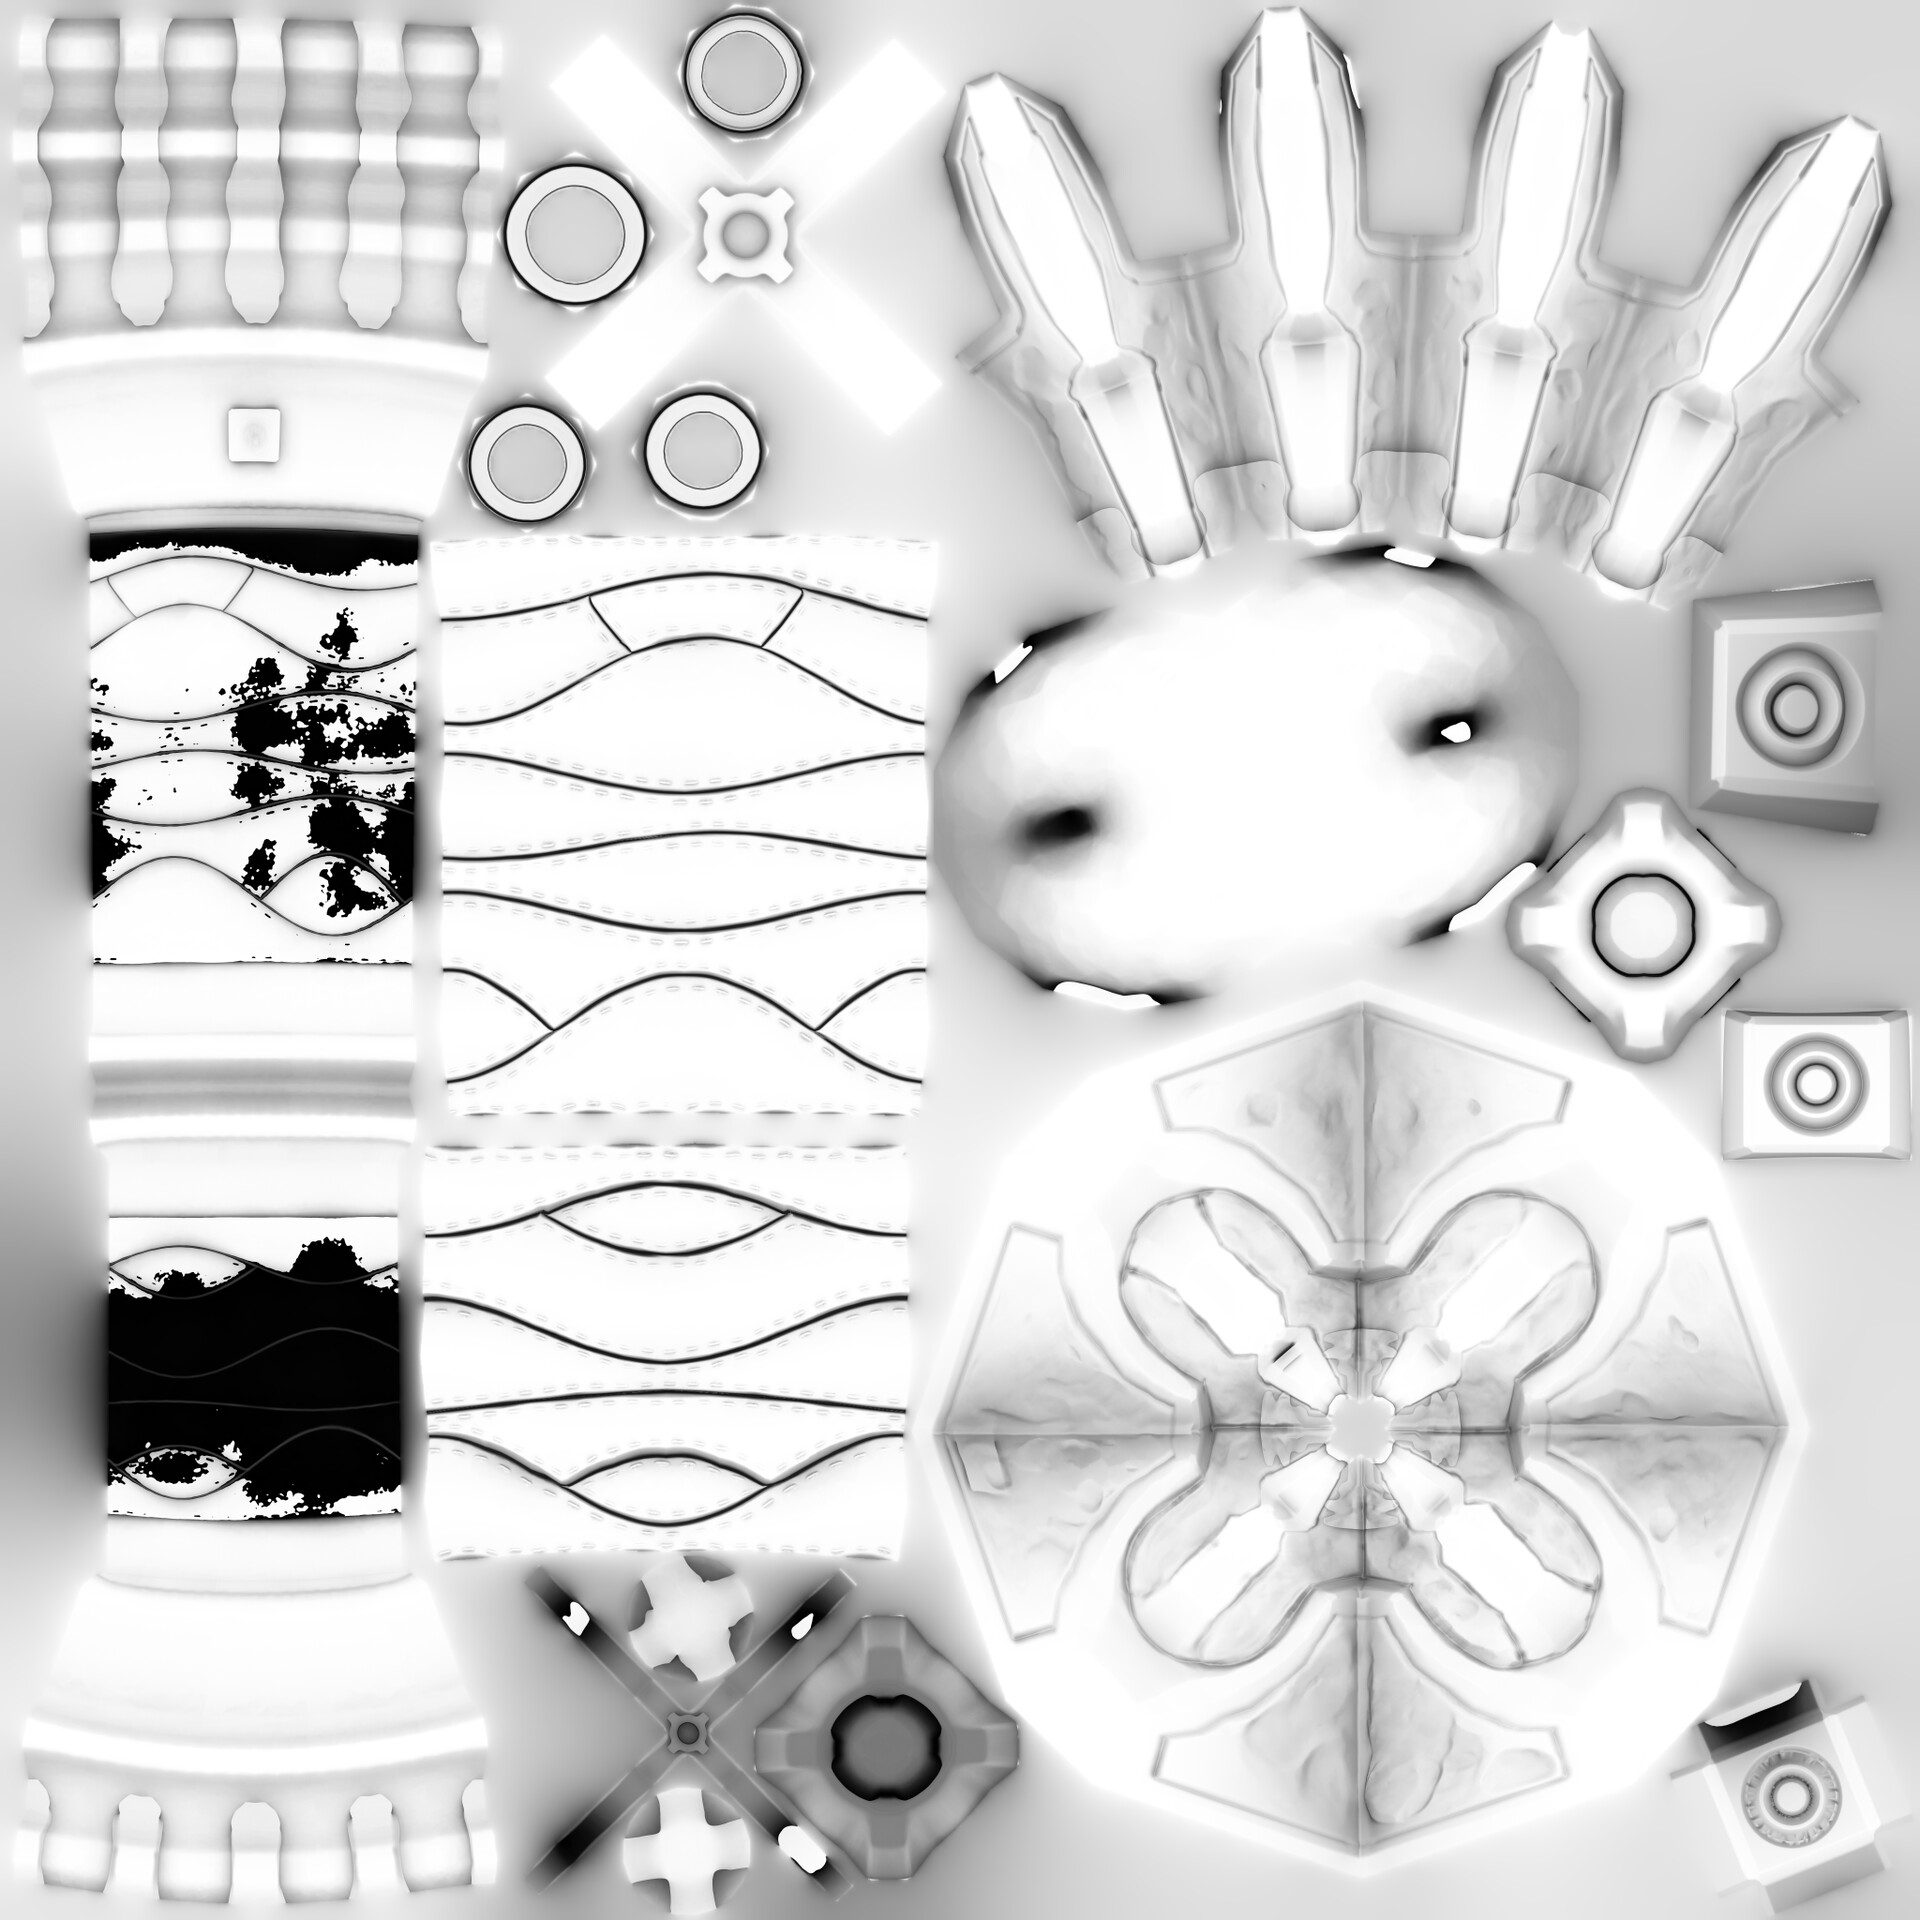 Ambient Occlusion (2048 resolution)